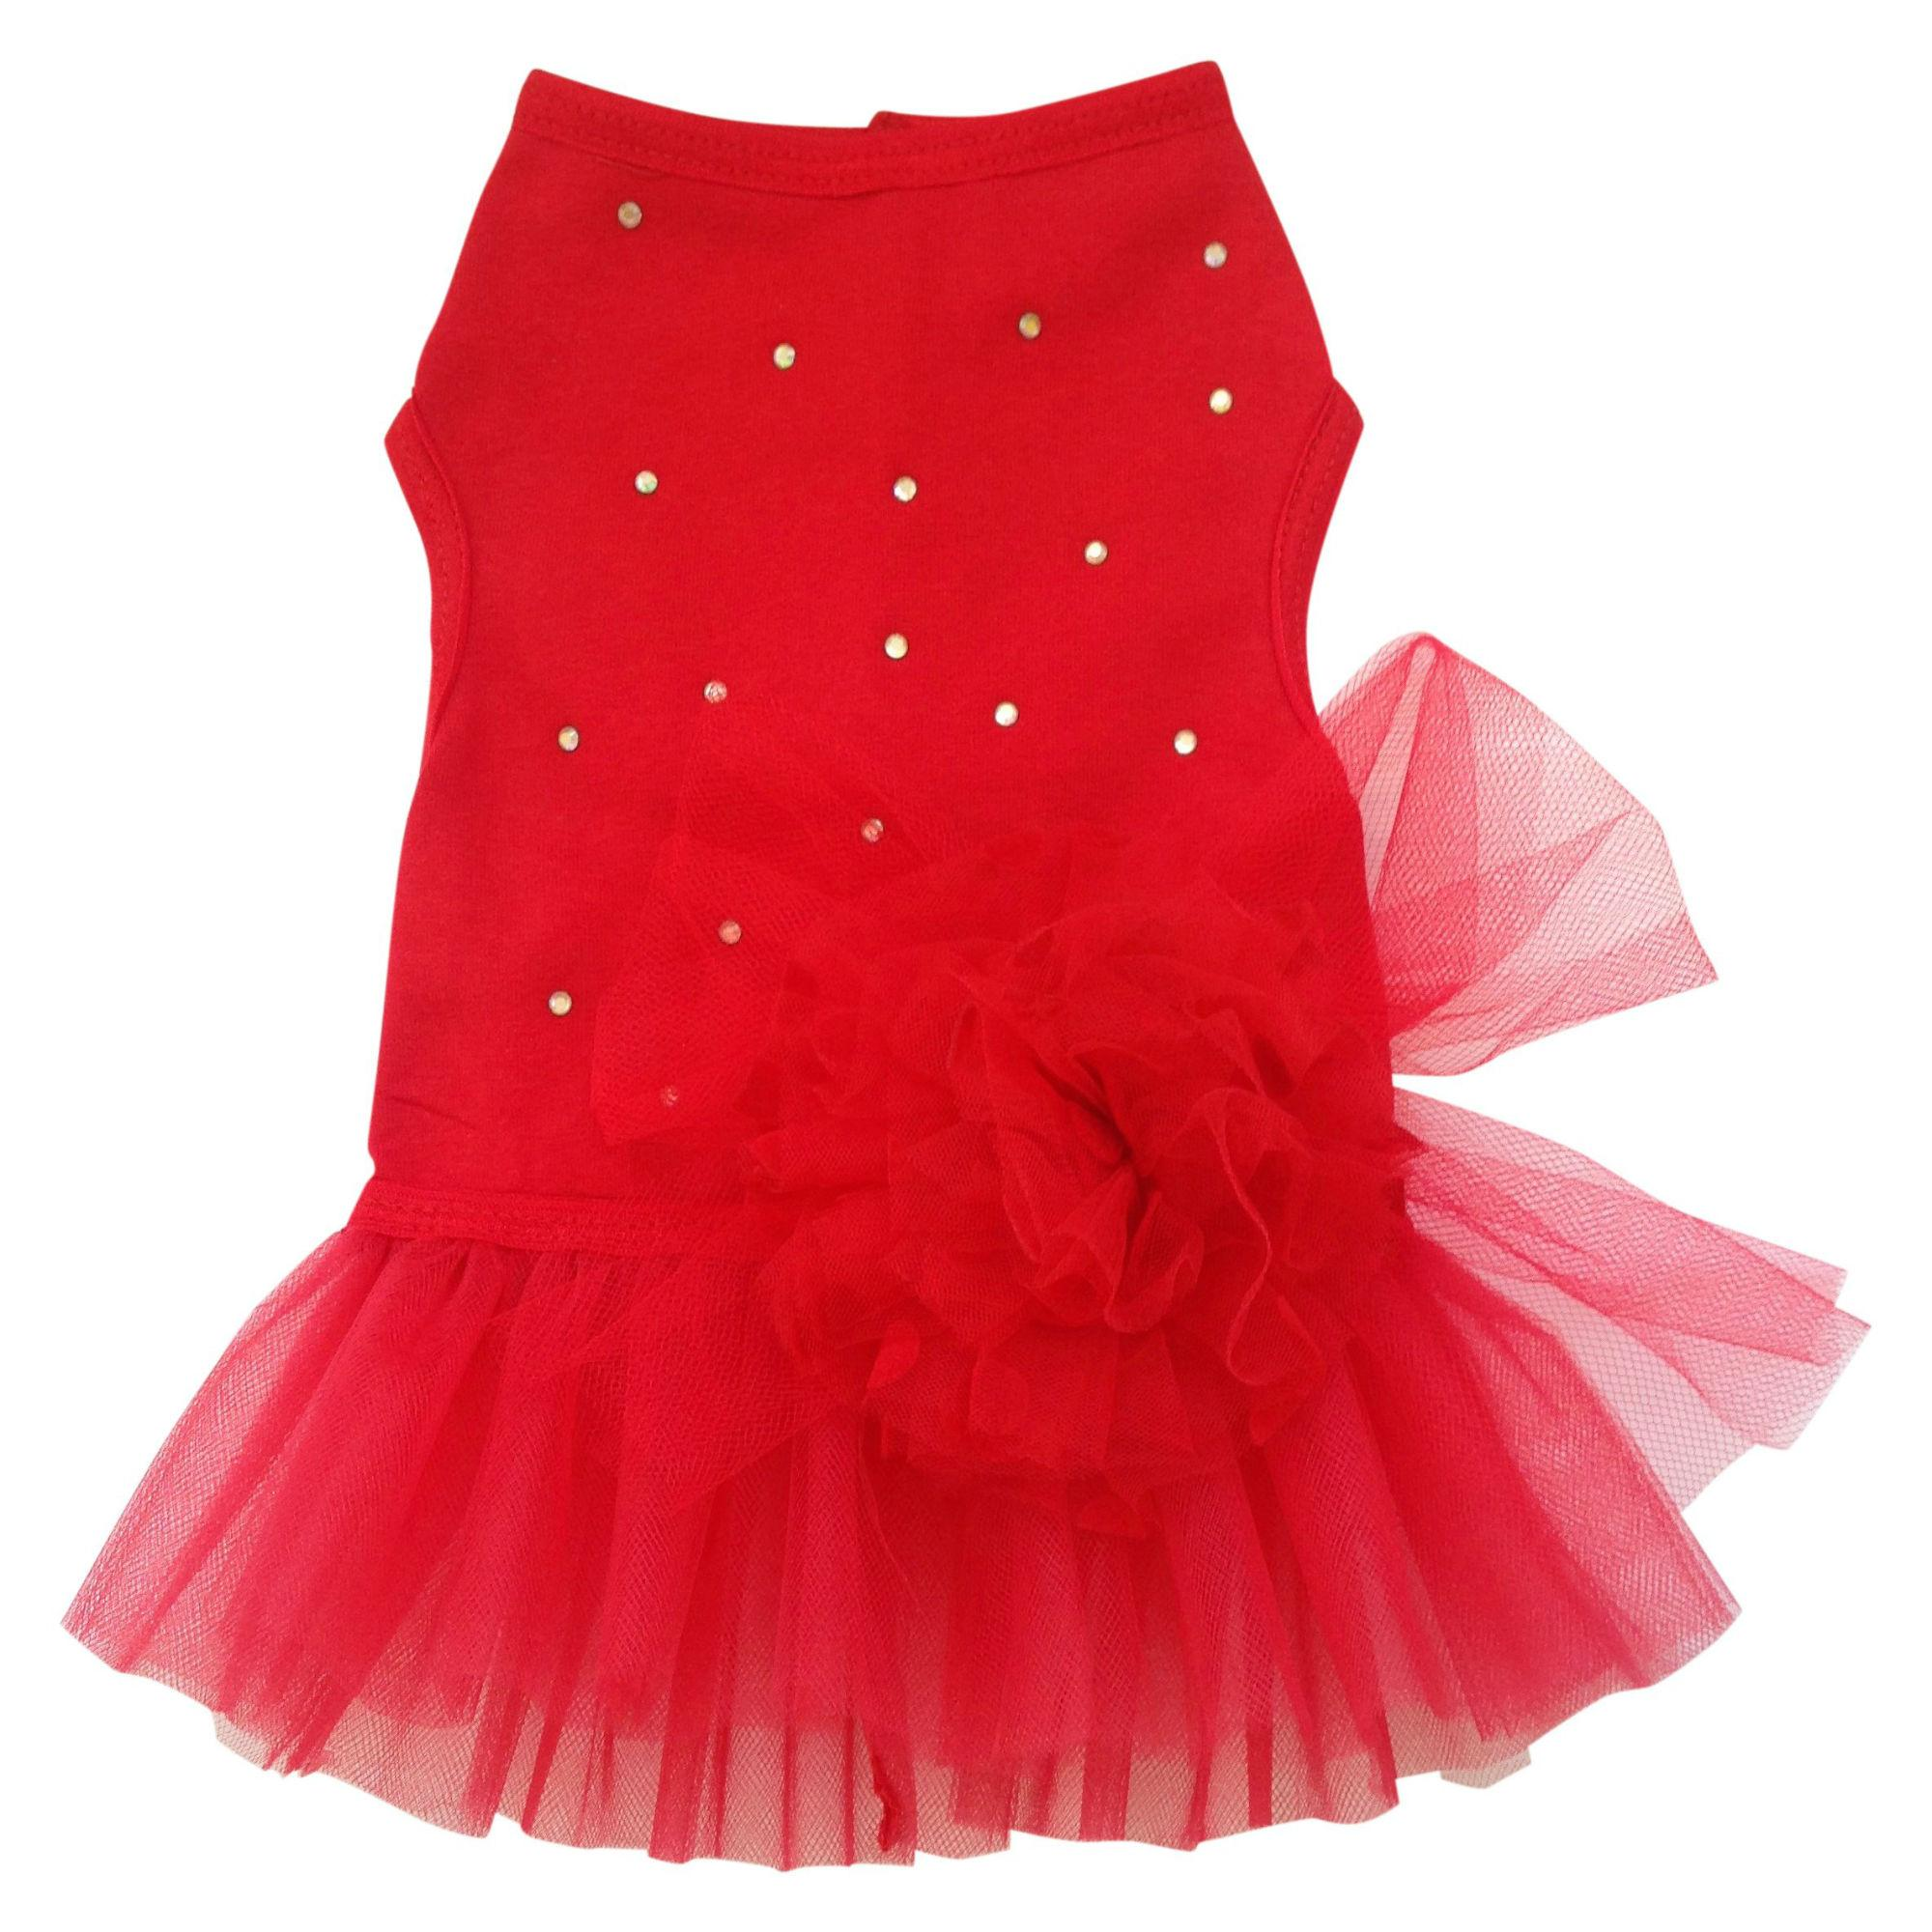 Red Tulle Dog Dress with Rhinestones and Flower